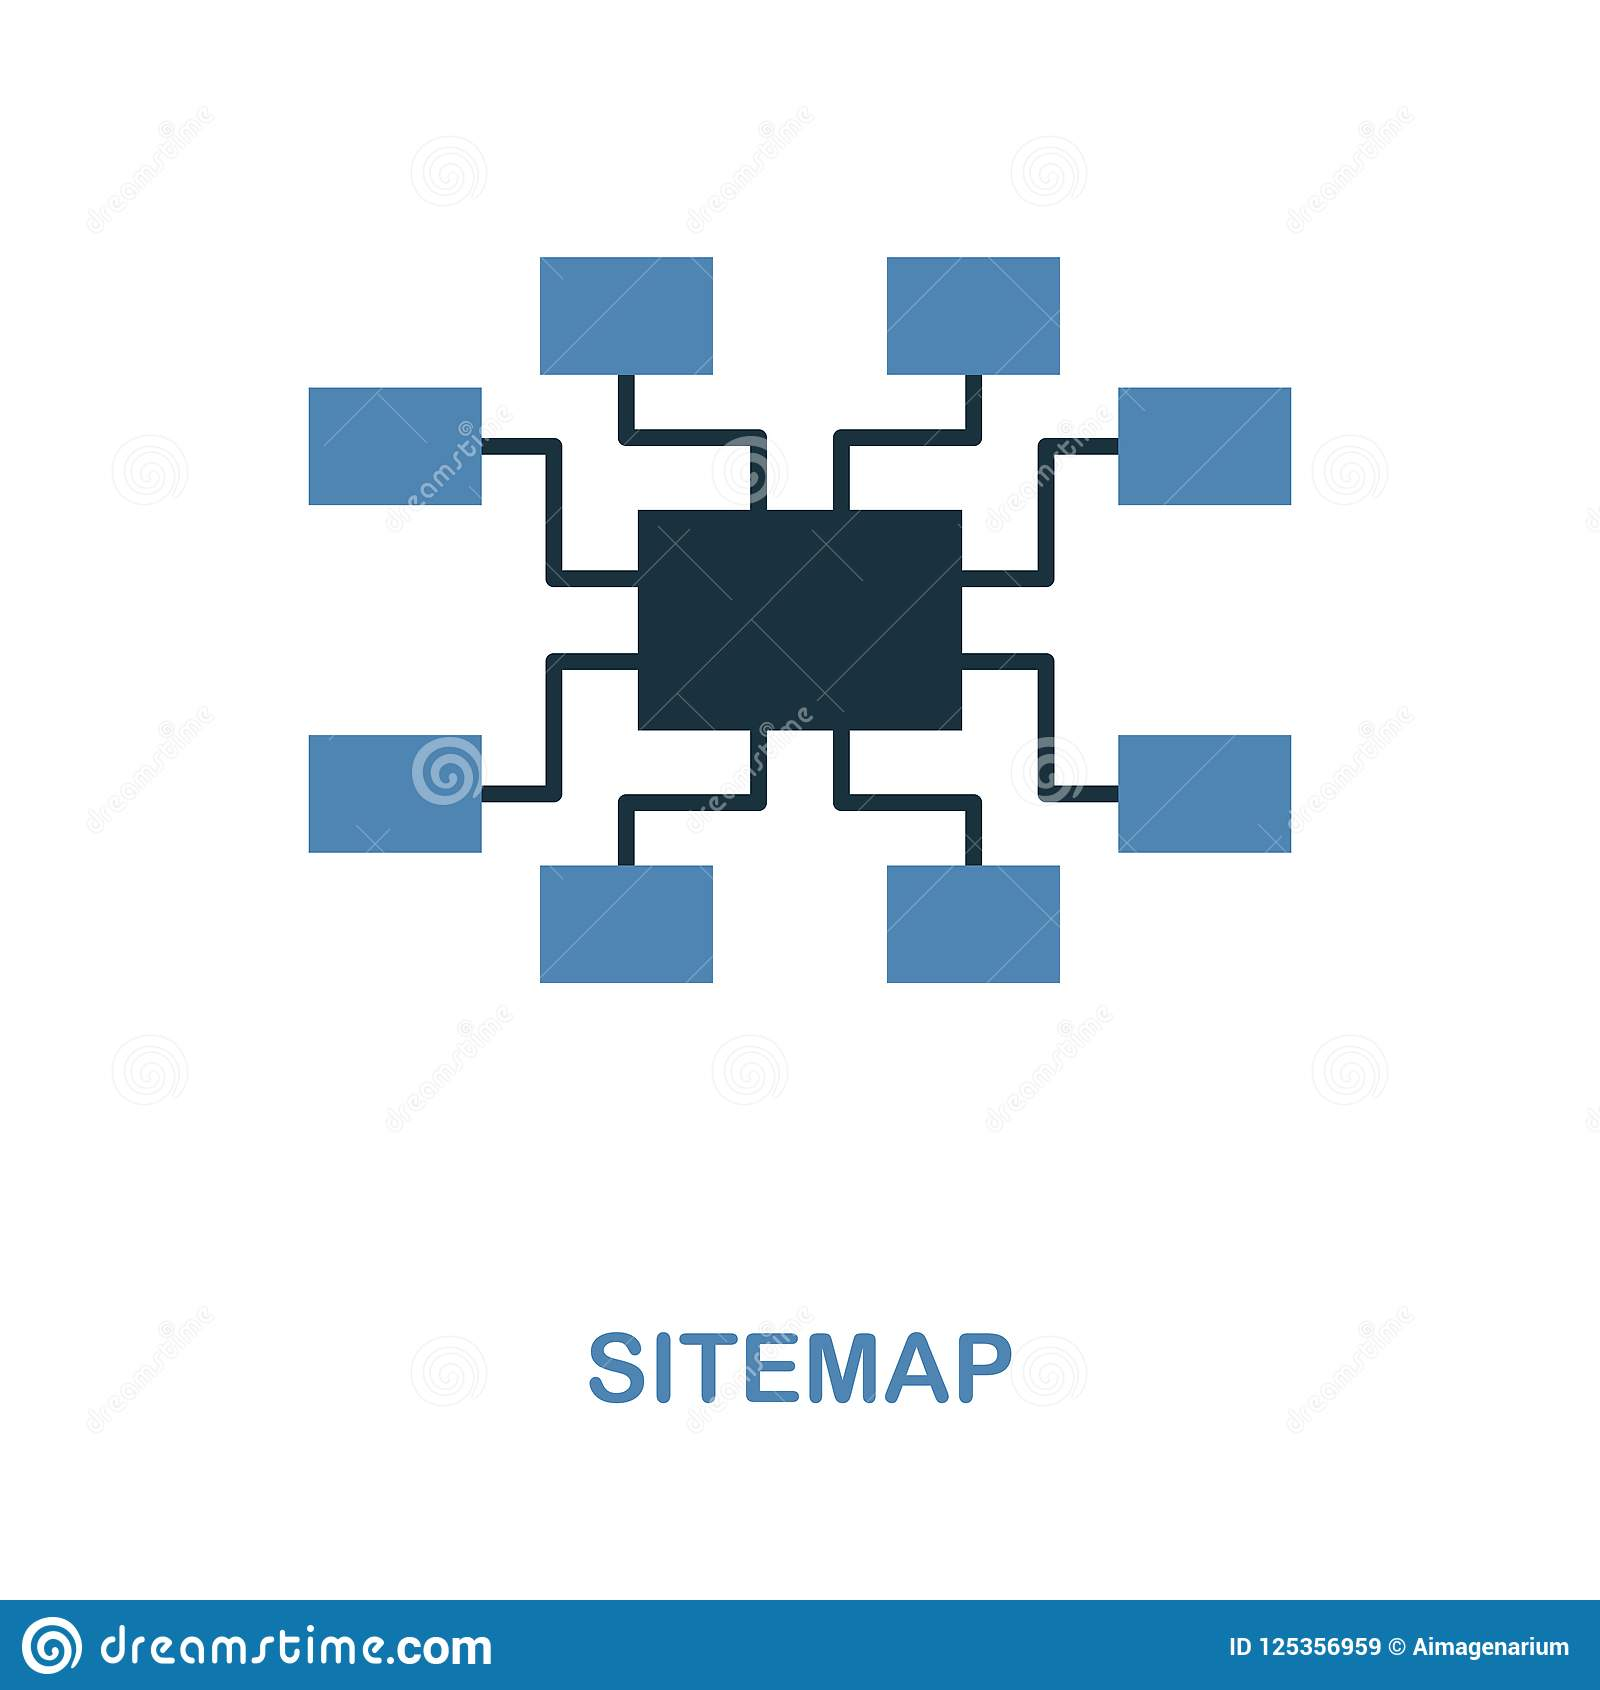 Sitemap icon. Simple element illustration in 2 colors design. Sitemap icon sign from seo collection. Perfect for web design, apps,